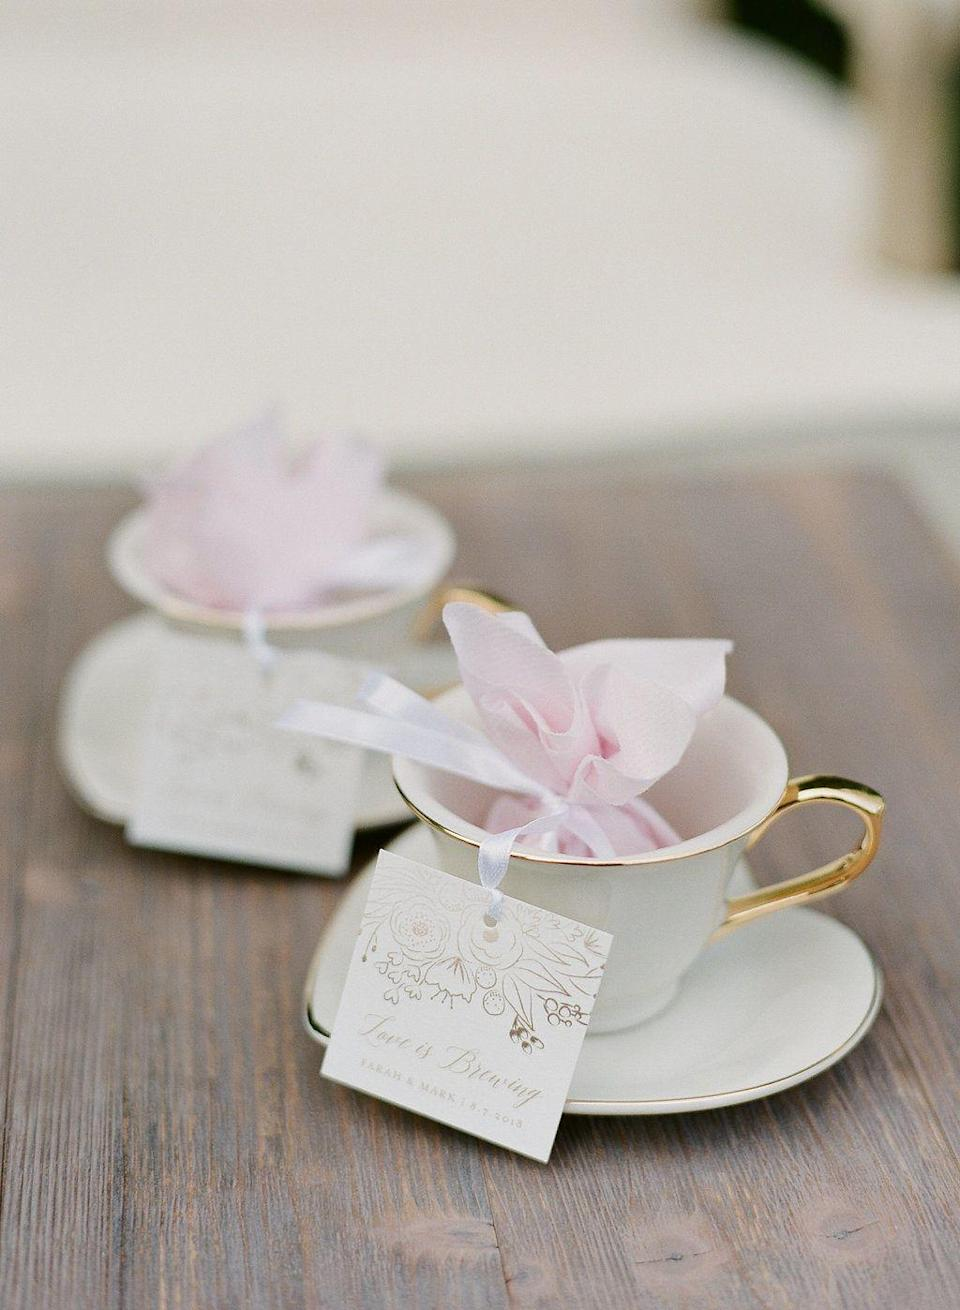 "<p>Why not host a Valentine's Day tea party? Teacups filled with blush-toned satchels sit atop heart-shaped tea saucers. </p><p><a href=""https://go.redirectingat.com?id=74968X1596630&url=https%3A%2F%2Fwww.saksfifthavenue.com%2Fralph-lauren-wilshire-tea-cup-saucer%2Fproduct%2F0400098294817%3Fsite_refer%3DCSE_GGLPLA%253AHome%253ARalph%2BLauren%26CSE_CID%3DG_Saks_PLA_US_Home%253AKitchen%2B%2526%2BDining%26gclid%3DCj0KCQiAsvTxBRDkARIsAH4W_j9n6Uz9y05PAq2PYDSK4kdSw0Mf76RuvD5125BuyHGkqSIEETnzWjgaArR4EALw_wcB%26gclsrc%3Daw.ds&sref=https%3A%2F%2Fwww.elledecor.com%2Flife-culture%2Ffun-at-home%2Fg2387%2Fvalentines-day-decor%2F"" rel=""nofollow noopener"" target=""_blank"" data-ylk=""slk:Via Style Me Pretty"" class=""link rapid-noclick-resp"">Via <em>Style Me Pretty</em></a></p><p><a class=""link rapid-noclick-resp"" href=""https://go.redirectingat.com?id=74968X1596630&url=https%3A%2F%2Fwww.saksfifthavenue.com%2Fralph-lauren-wilshire-tea-cup-saucer%2Fproduct%2F0400098294817%3Fsite_refer%3DCSE_GGLPLA%253AHome%253ARalph%2BLauren%26CSE_CID%3DG_Saks_PLA_US_Home%253AKitchen%2B%2526%2BDining%26gclid%3DCj0KCQiAsvTxBRDkARIsAH4W_j9n6Uz9y05PAq2PYDSK4kdSw0Mf76RuvD5125BuyHGkqSIEETnzWjgaArR4EALw_wcB%26gclsrc%3Daw.ds&sref=https%3A%2F%2Fwww.elledecor.com%2Flife-culture%2Ffun-at-home%2Fg2387%2Fvalentines-day-decor%2F"" rel=""nofollow noopener"" target=""_blank"" data-ylk=""slk:GET THE LOOK"">GET THE LOOK</a><em><br>Ralph Lauren Tea Cup and Saucer, Saks Fifth Avenue, <em>$65</em></em></p>"